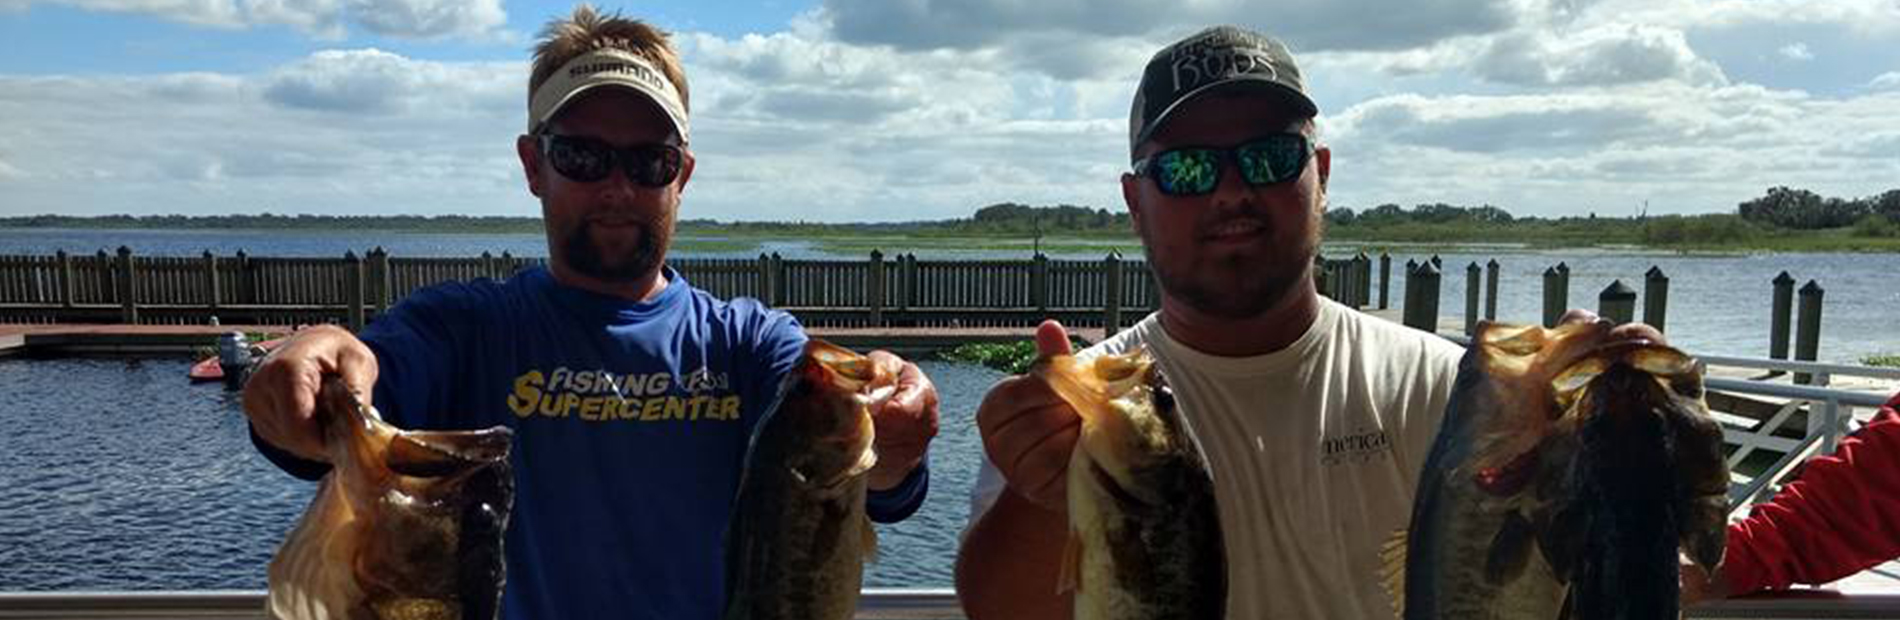 Marion County Bassmasters – Home Page for the Marion County